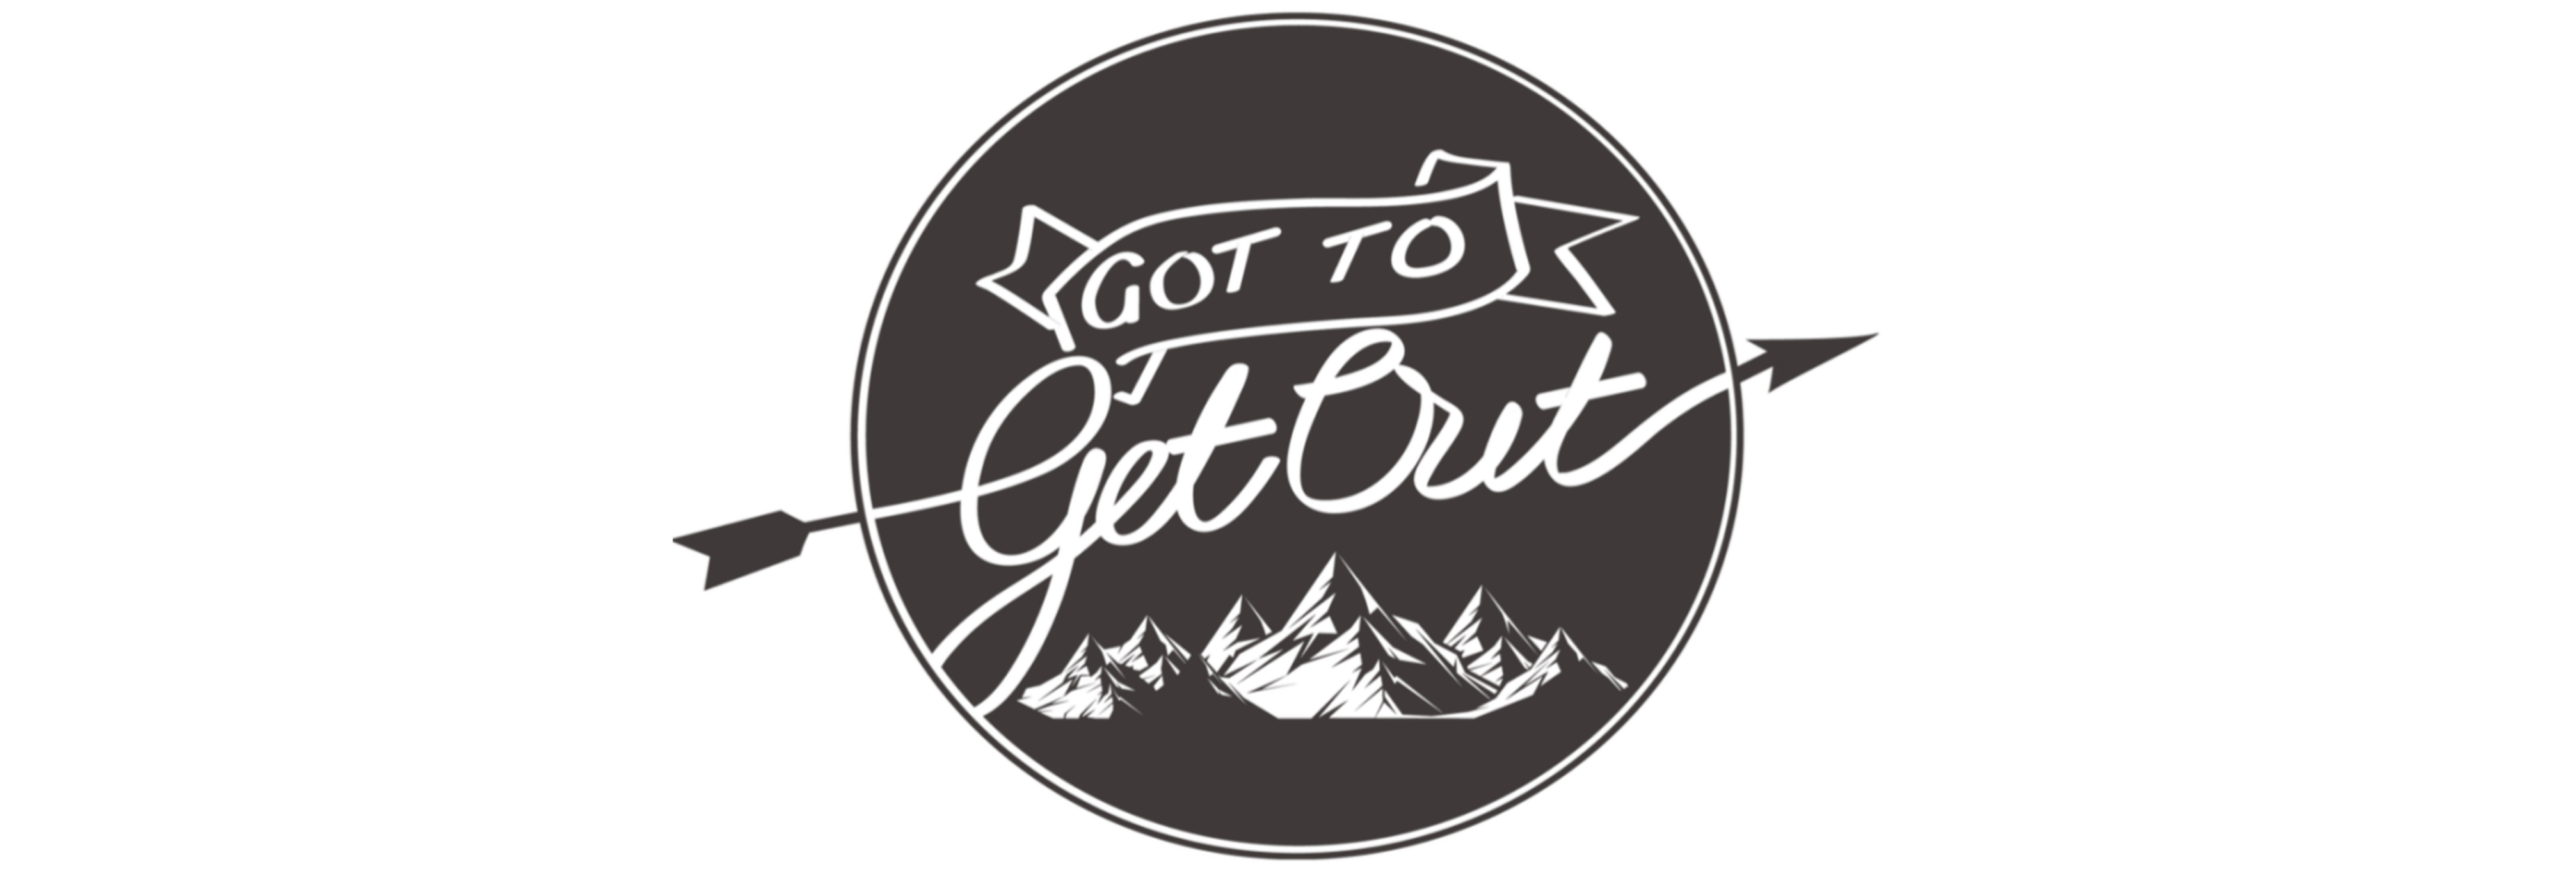 Got To Get Out Logo